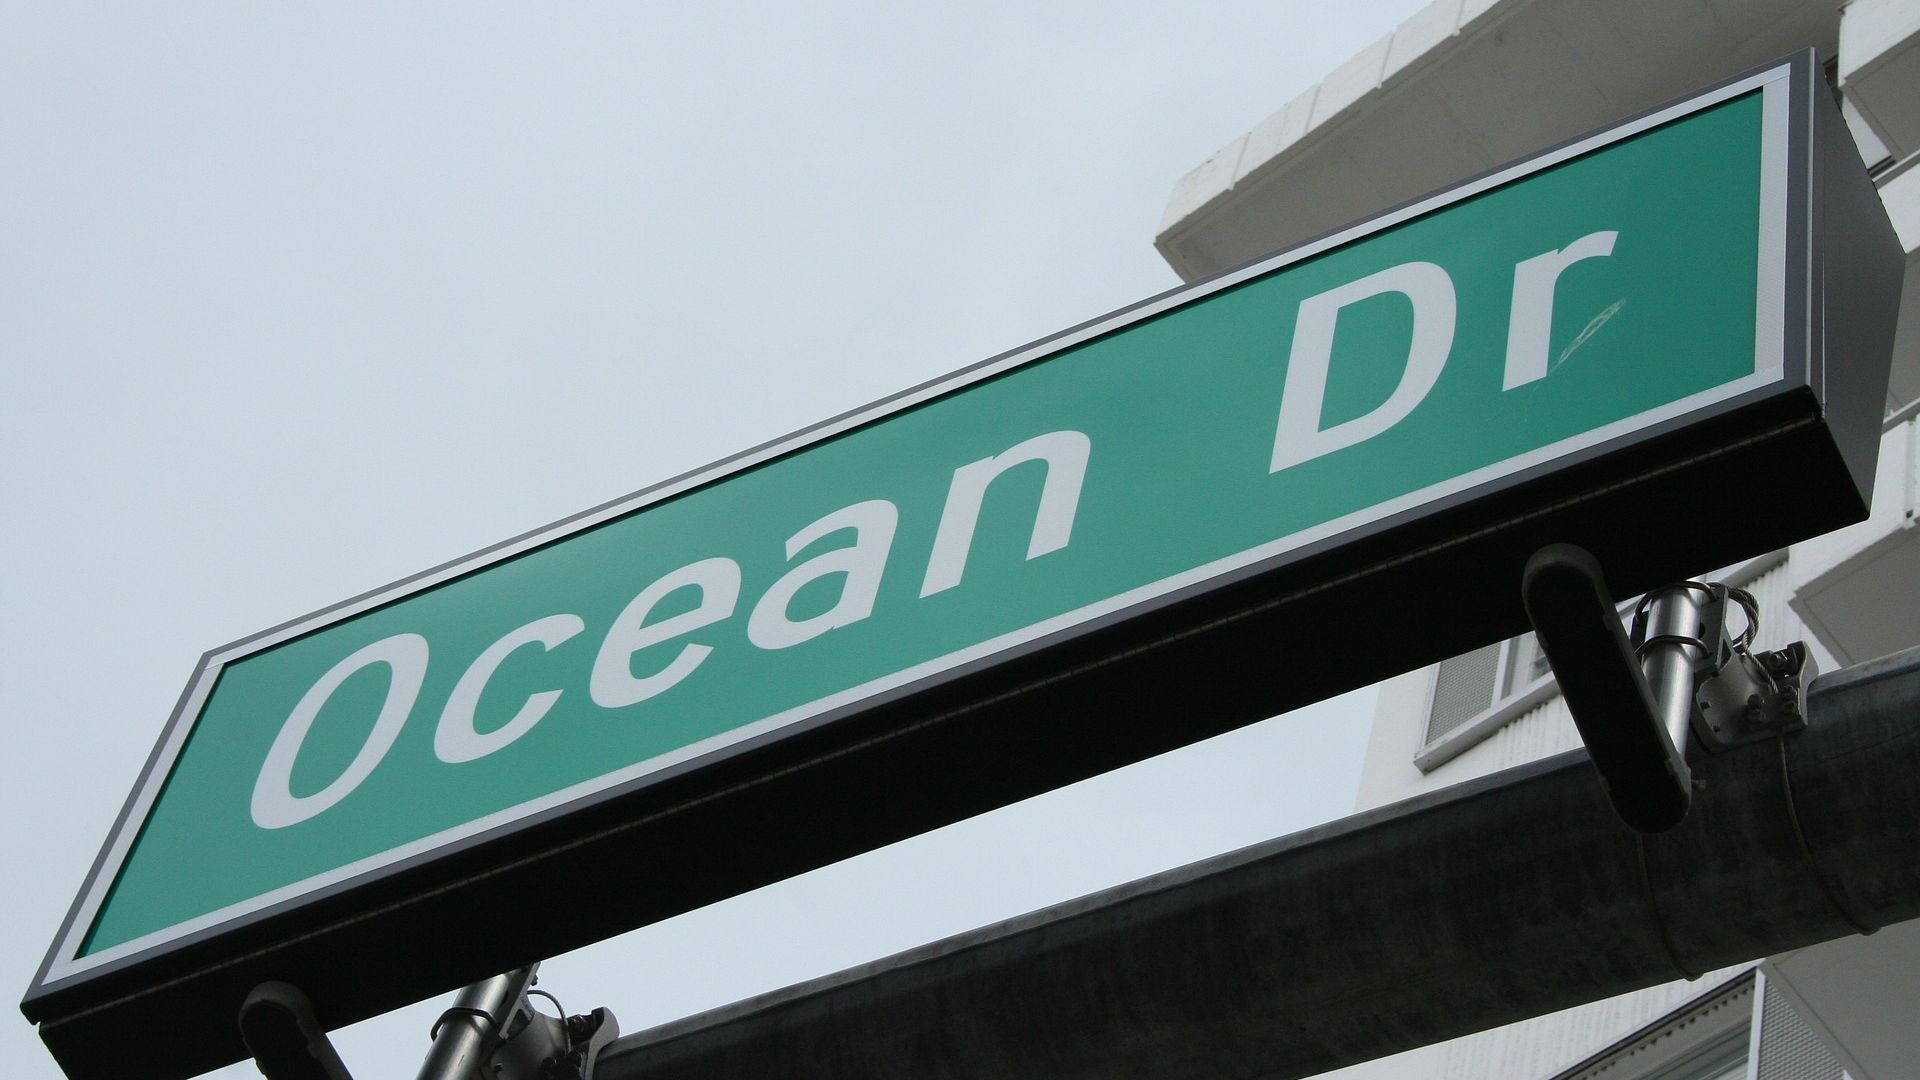 Your Ocean Drive apartments